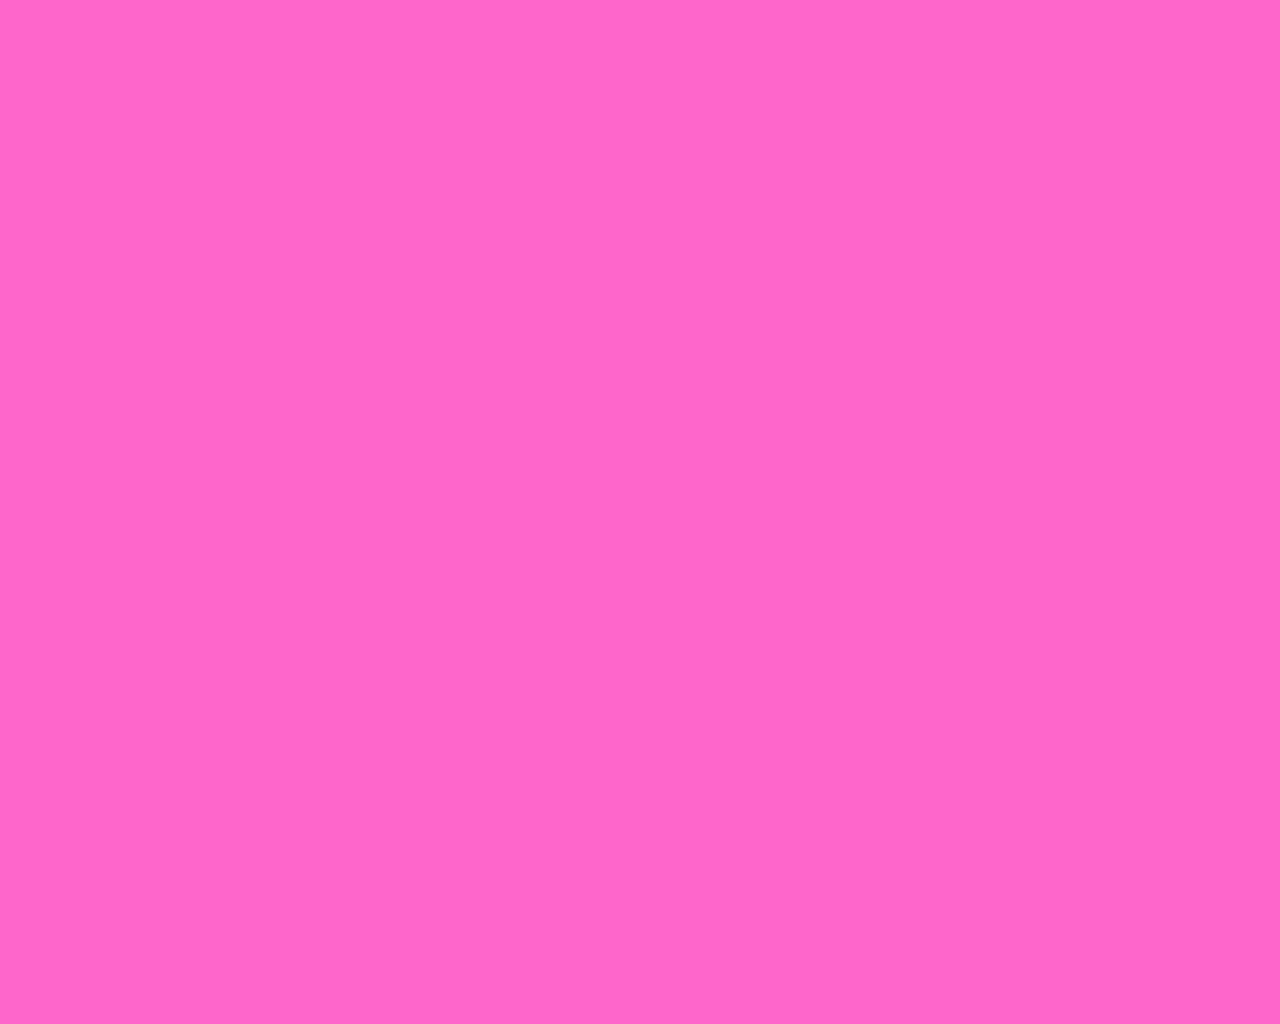 1280x1024 rose pink solid color background for Roses to colour in